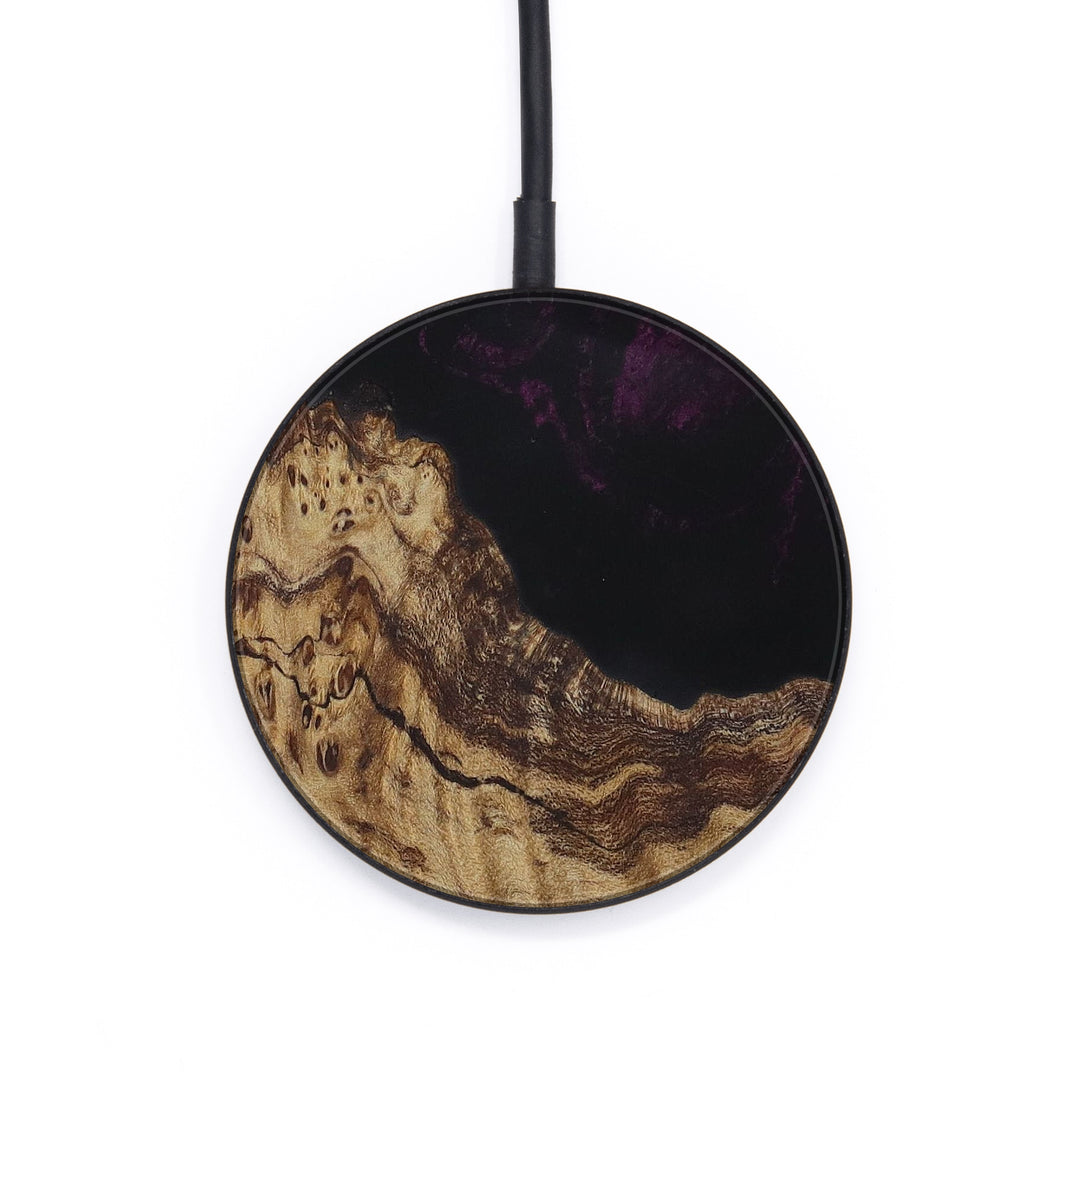 Circle Wood+Resin Wireless Charger - Celestia (Purple, 406352)